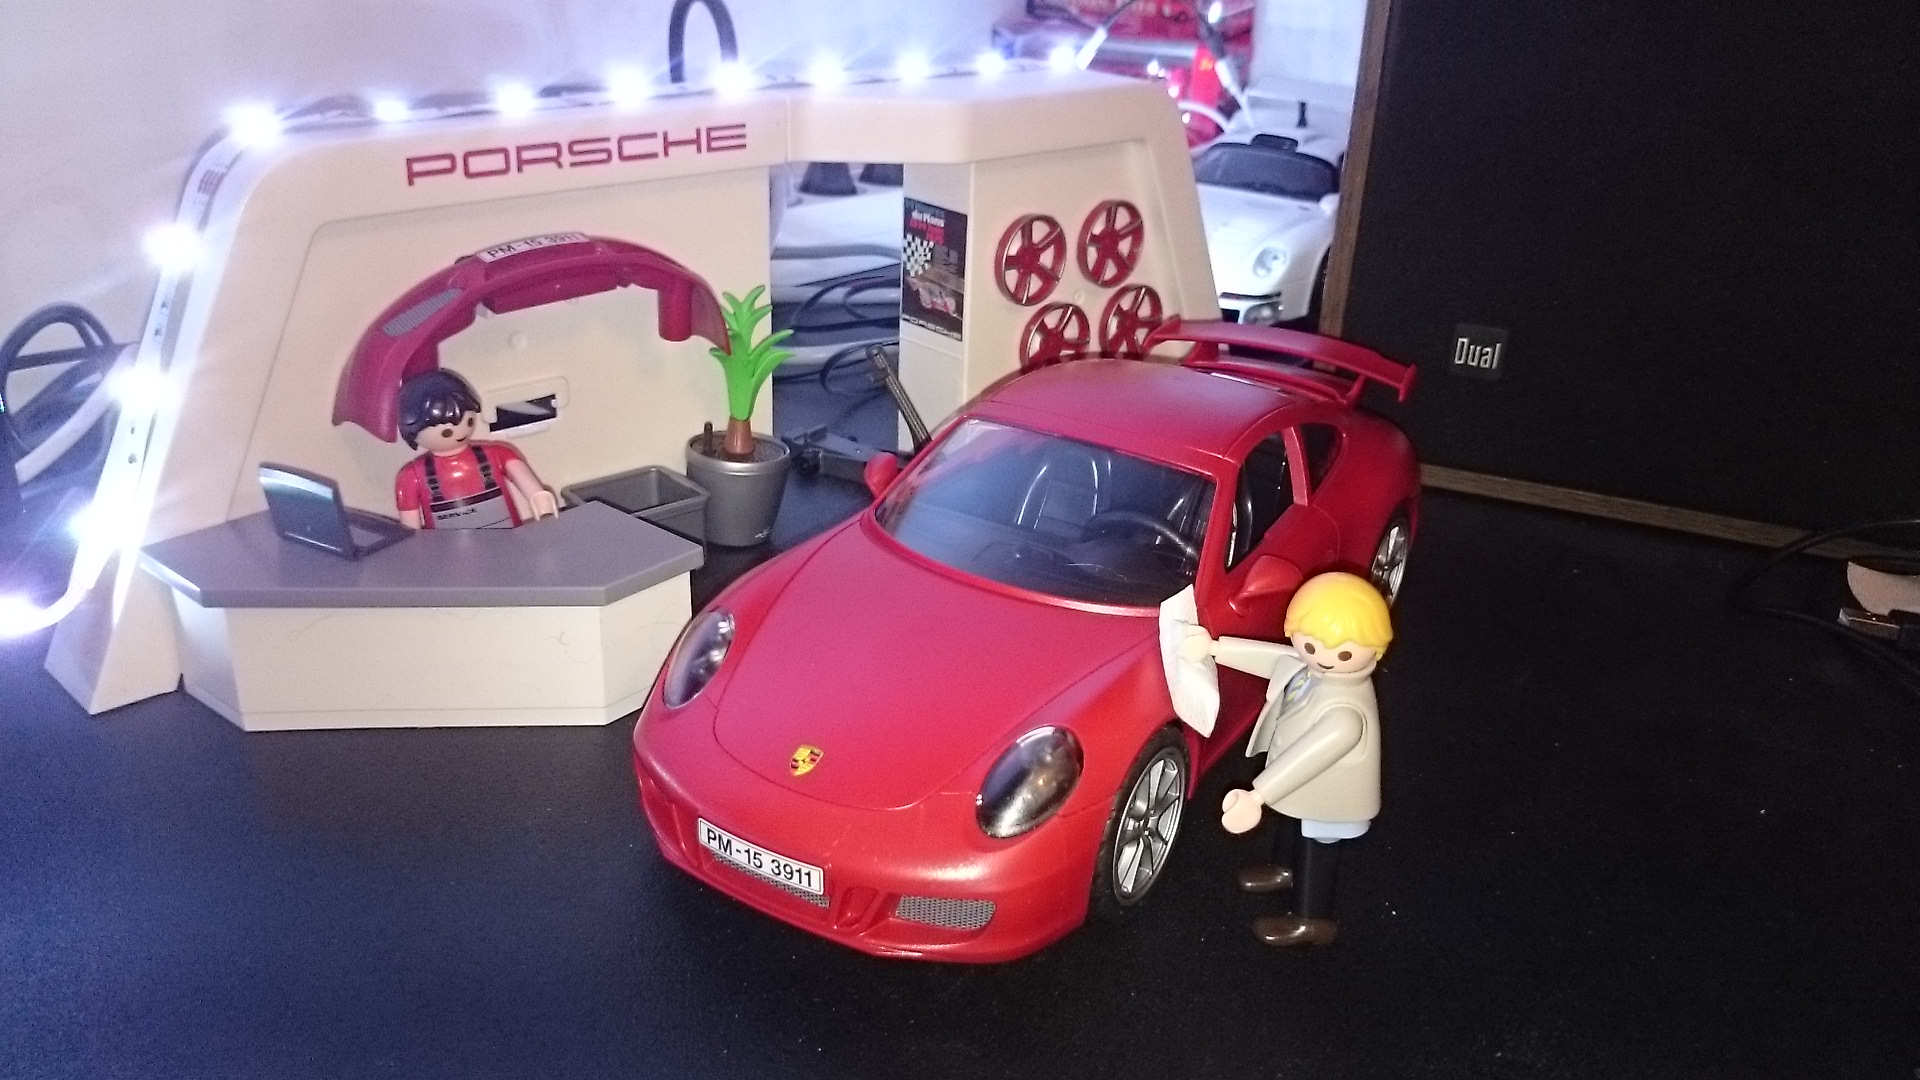 porsche playmobil d j re u le bar des porschistes. Black Bedroom Furniture Sets. Home Design Ideas